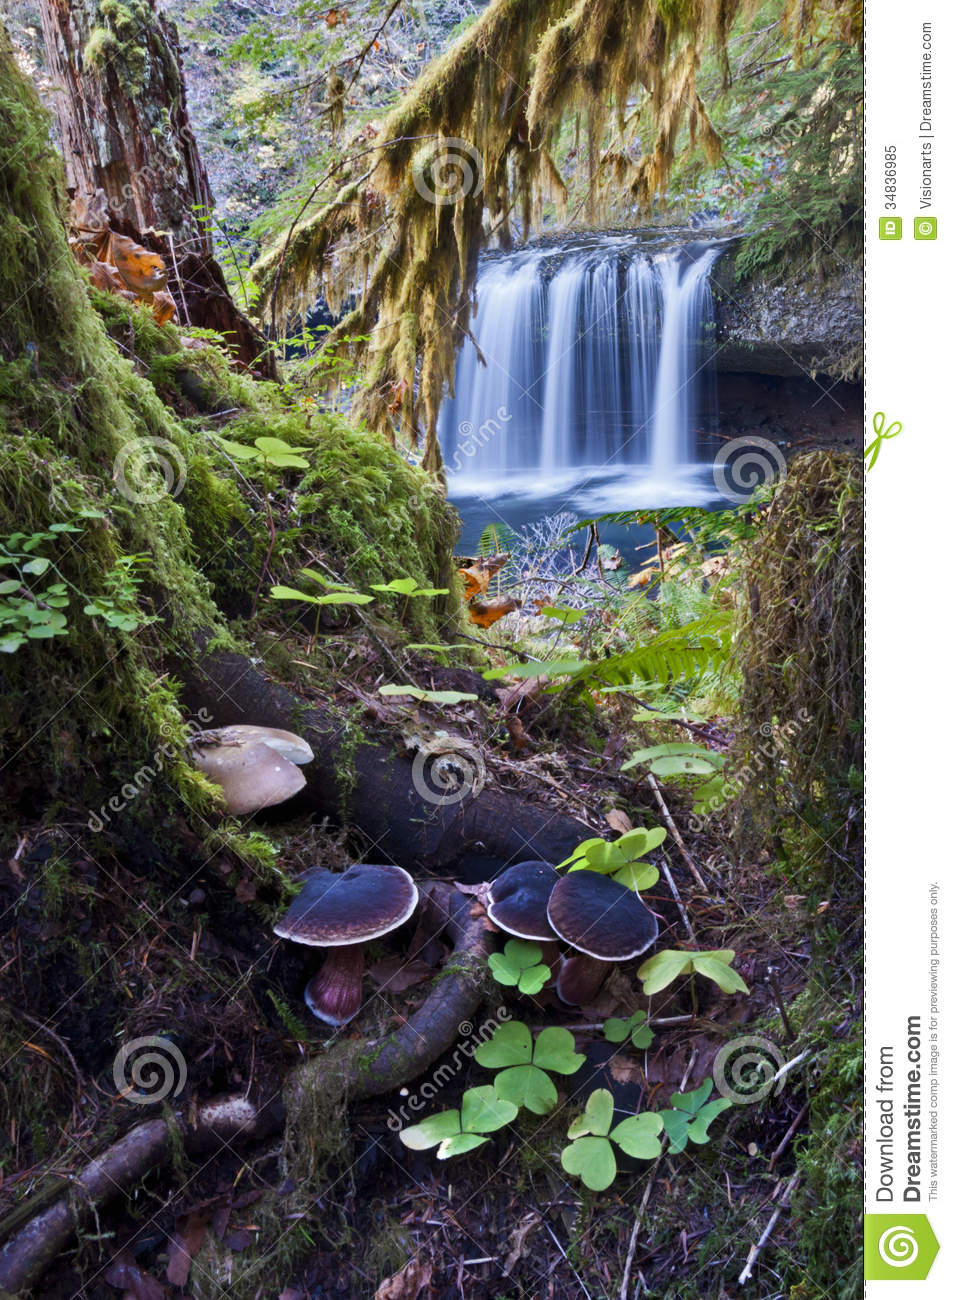 enchanted forest with waterfall stock image image of mossy